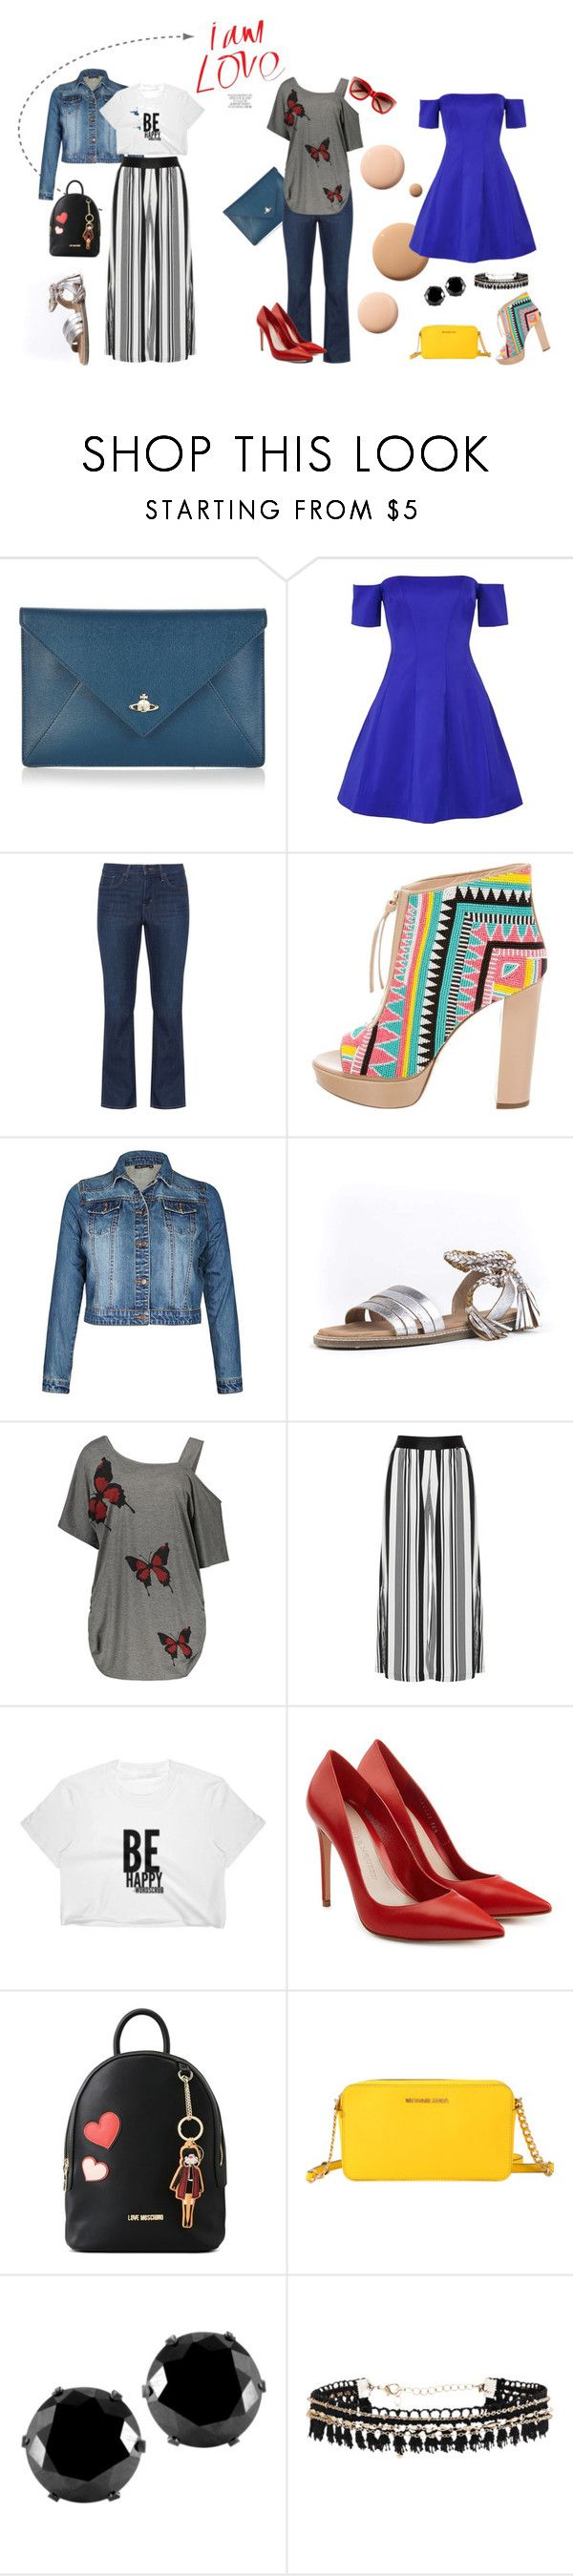 """""""chicas curvy"""" by alejandrarivera-i on Polyvore featuring moda, CC, Vivienne Westwood, Kendall + Kylie, Levi's, Jerome C. Rousseau, Seychelles, Mat, Alexander McQueen y Love Moschino"""